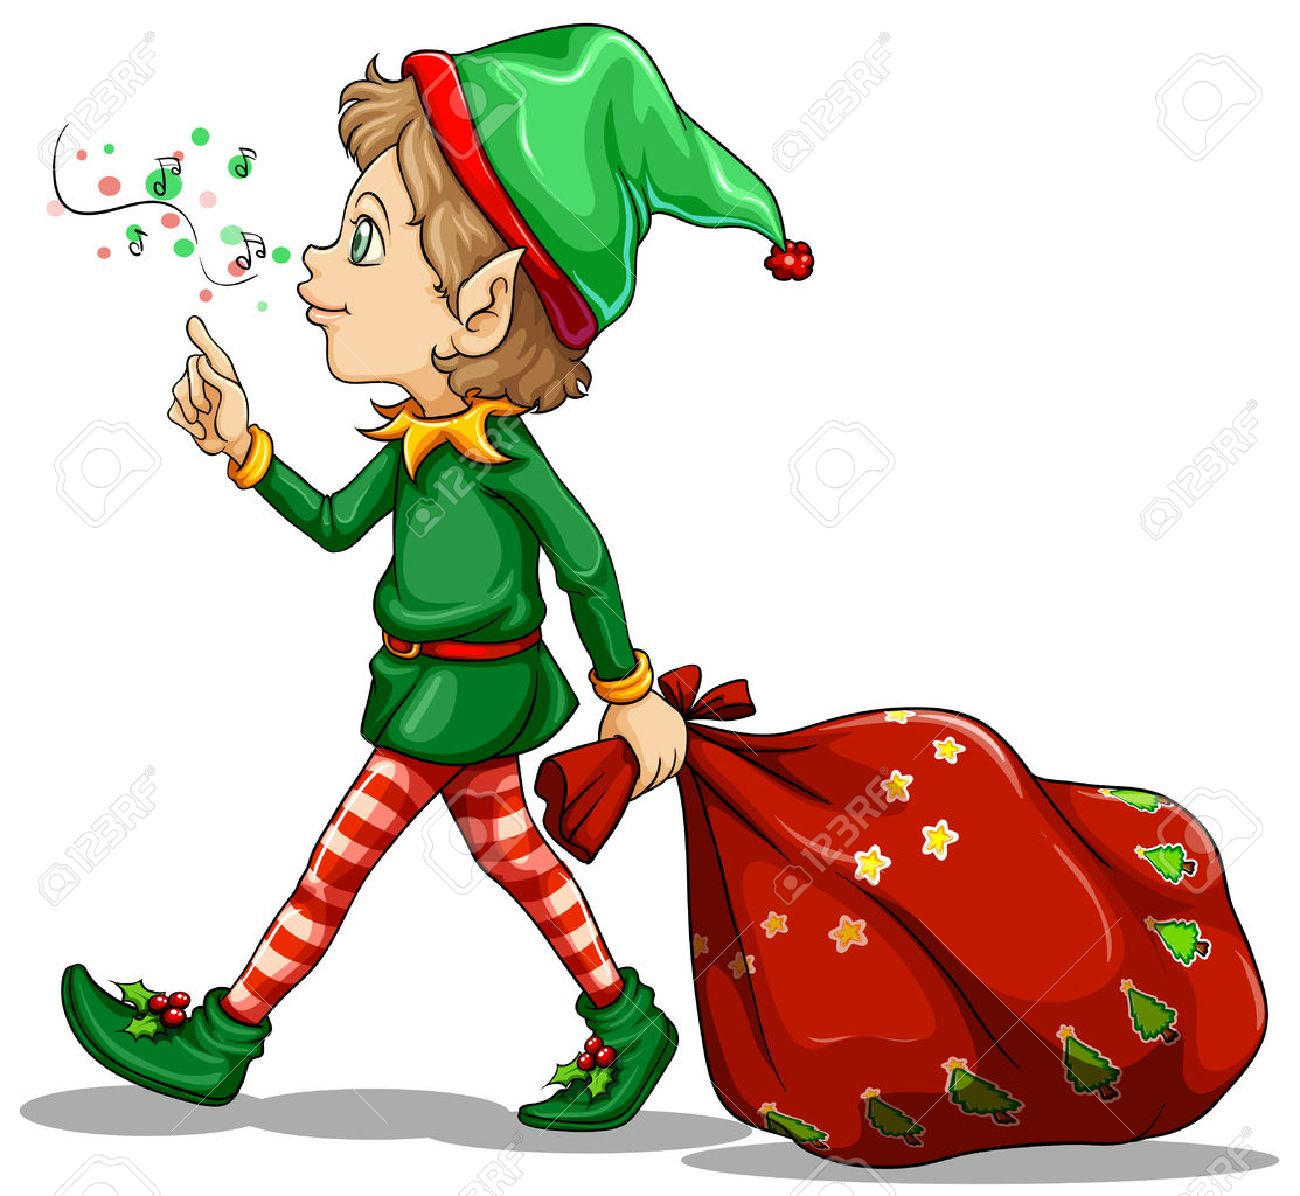 illustration of a young elf dragging a sack of gifts on a white